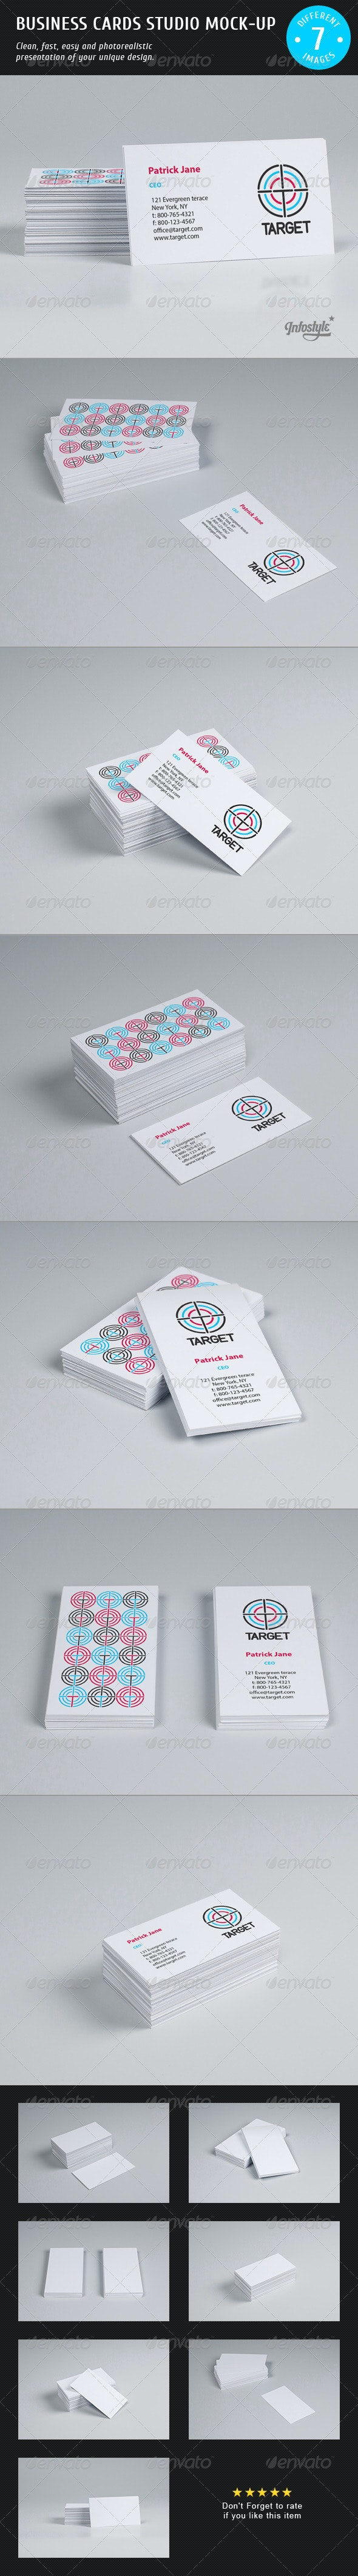 Business Cards Studio Mock-up - Business Cards Print